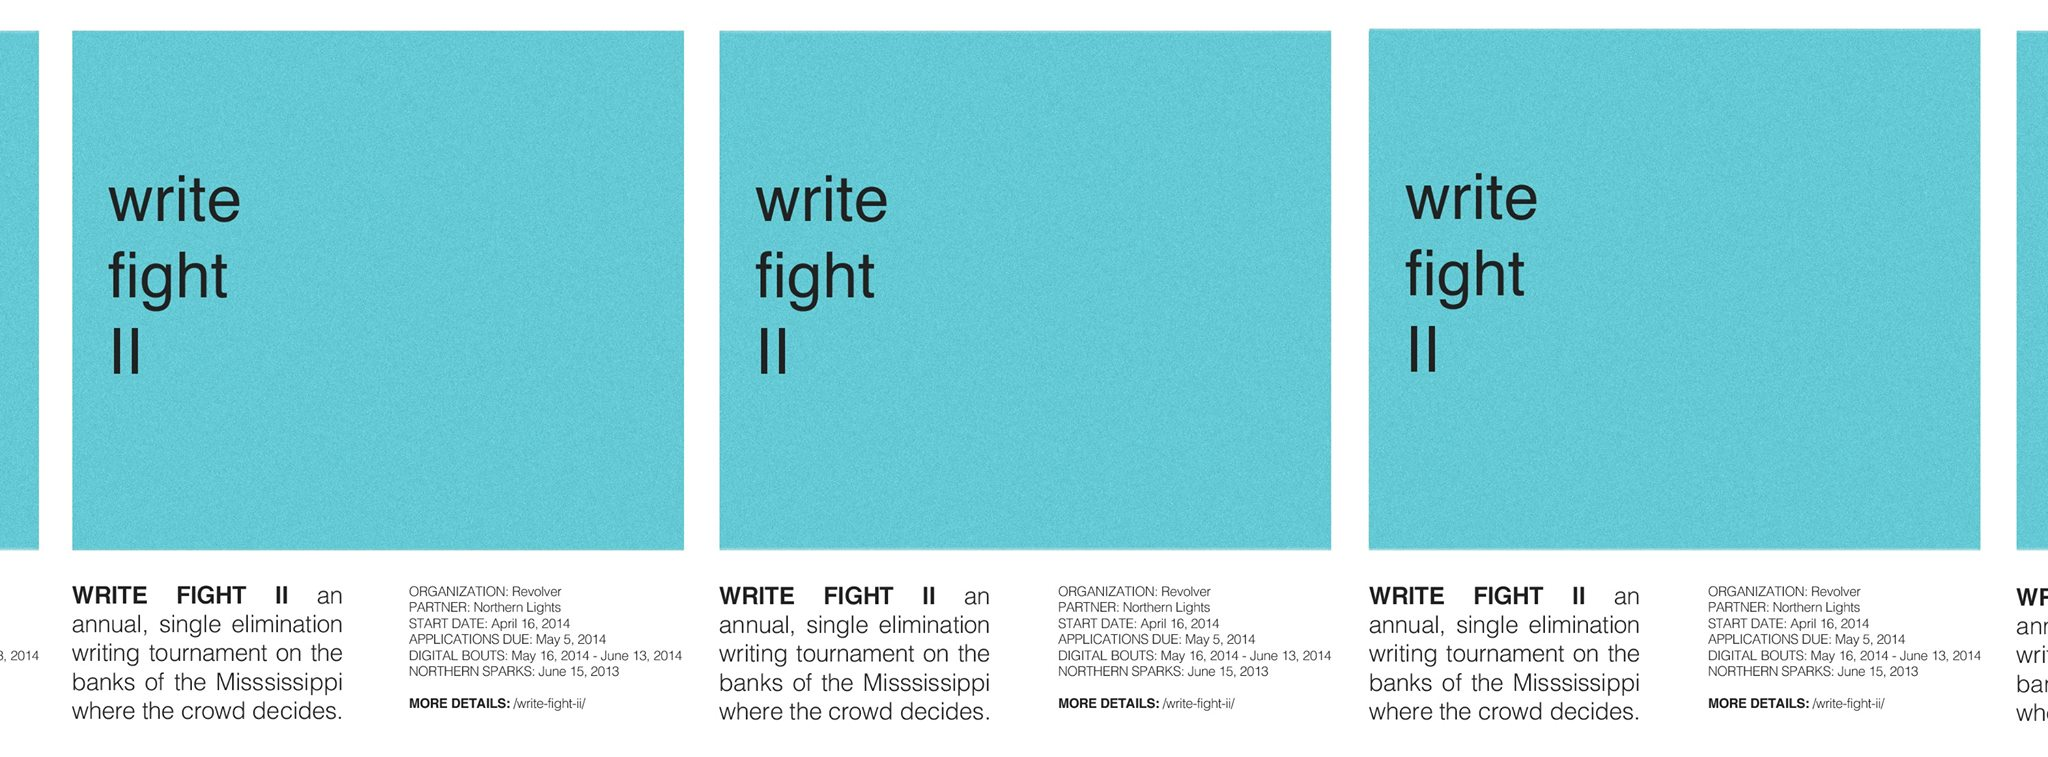 Write Fight II